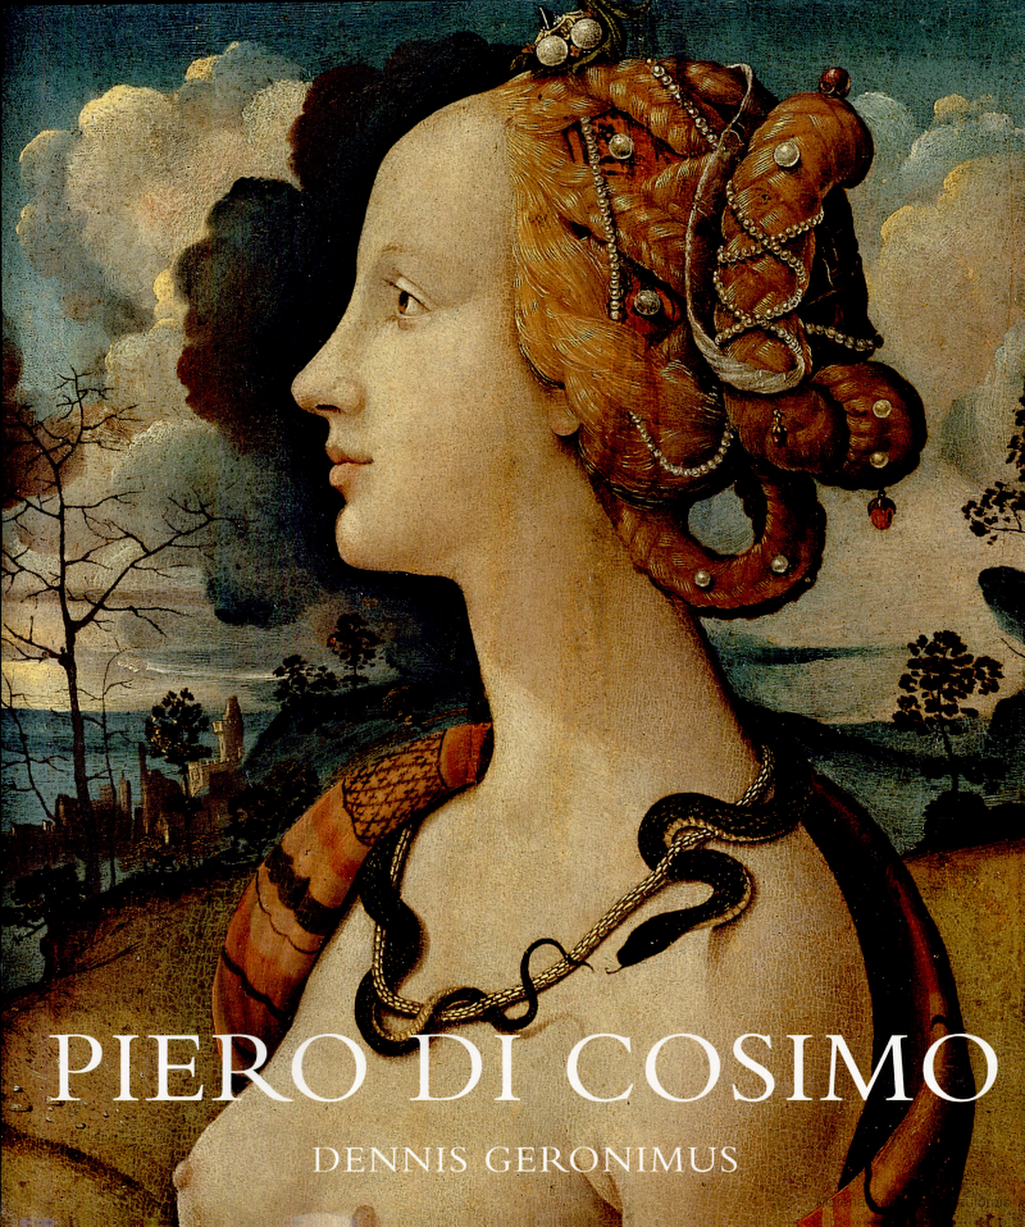 Inverting rules with obvious relish, Florentine artist Piero di Cosimo (1462-1522) is known today - as he was in his own time - for his highly personal visual language, one capable of generating images of the most mesmerizing oddity. In this book, Dennis Geronimus overcomes the scarcity of information about the artist's life and works - only one of the nearly sixty known works by Piero is actually signed and dated - and pieces together from extensive archival research a complete and accur...